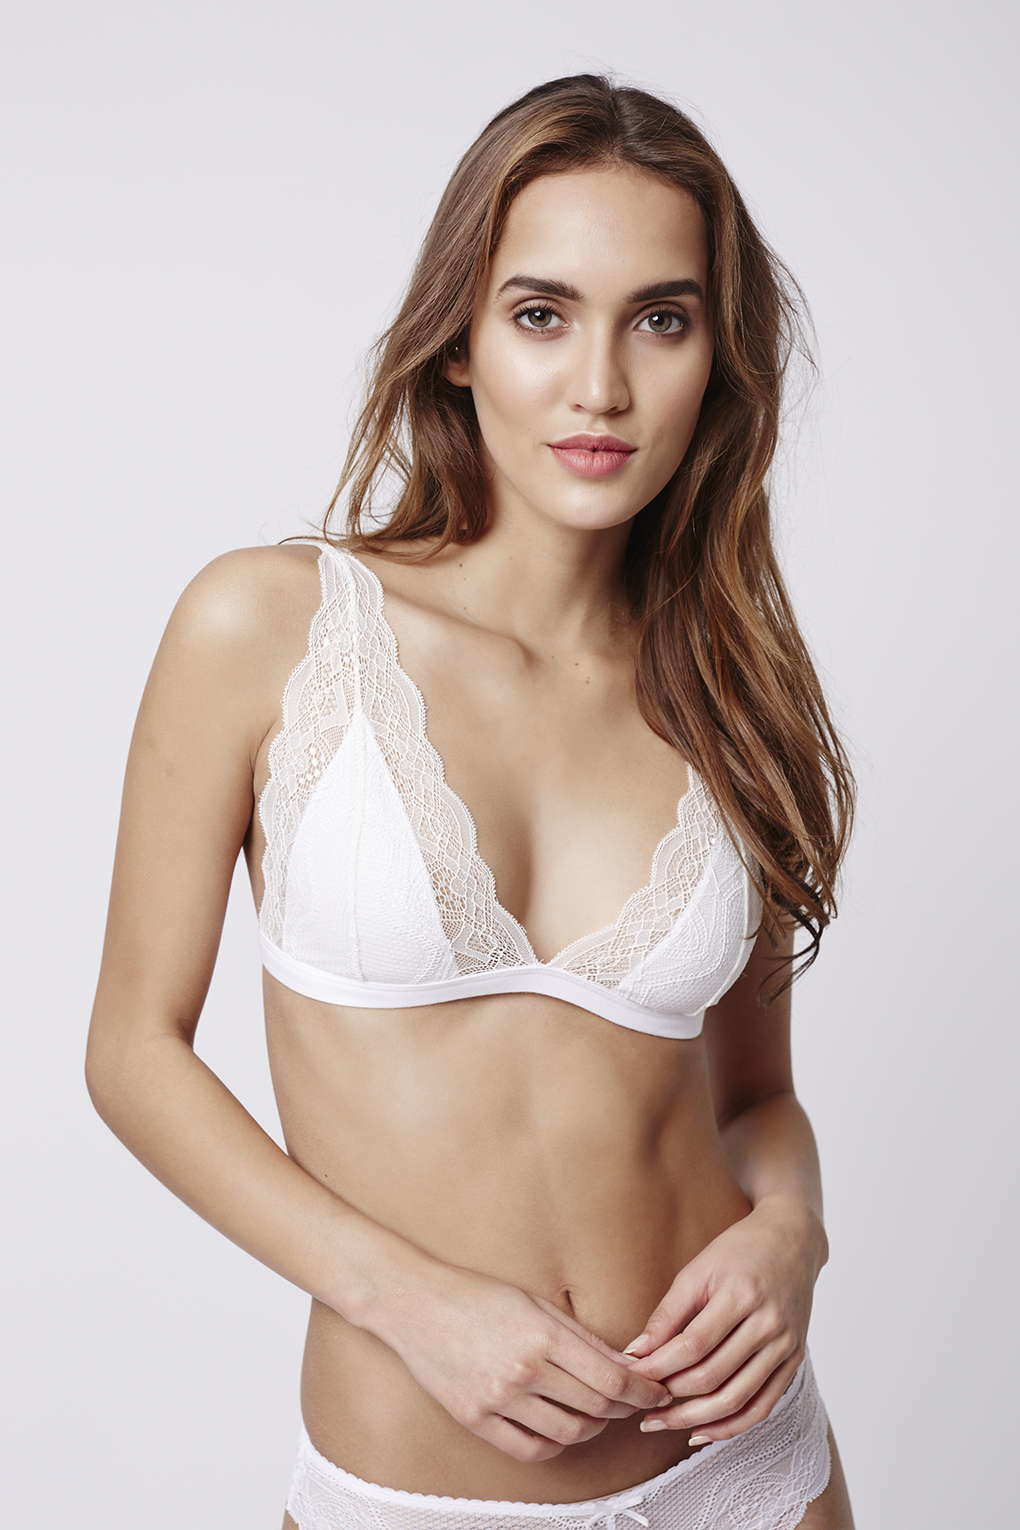 df40cfd293524 Lyst - TOPSHOP Jersey Lace Triangle Bra in White